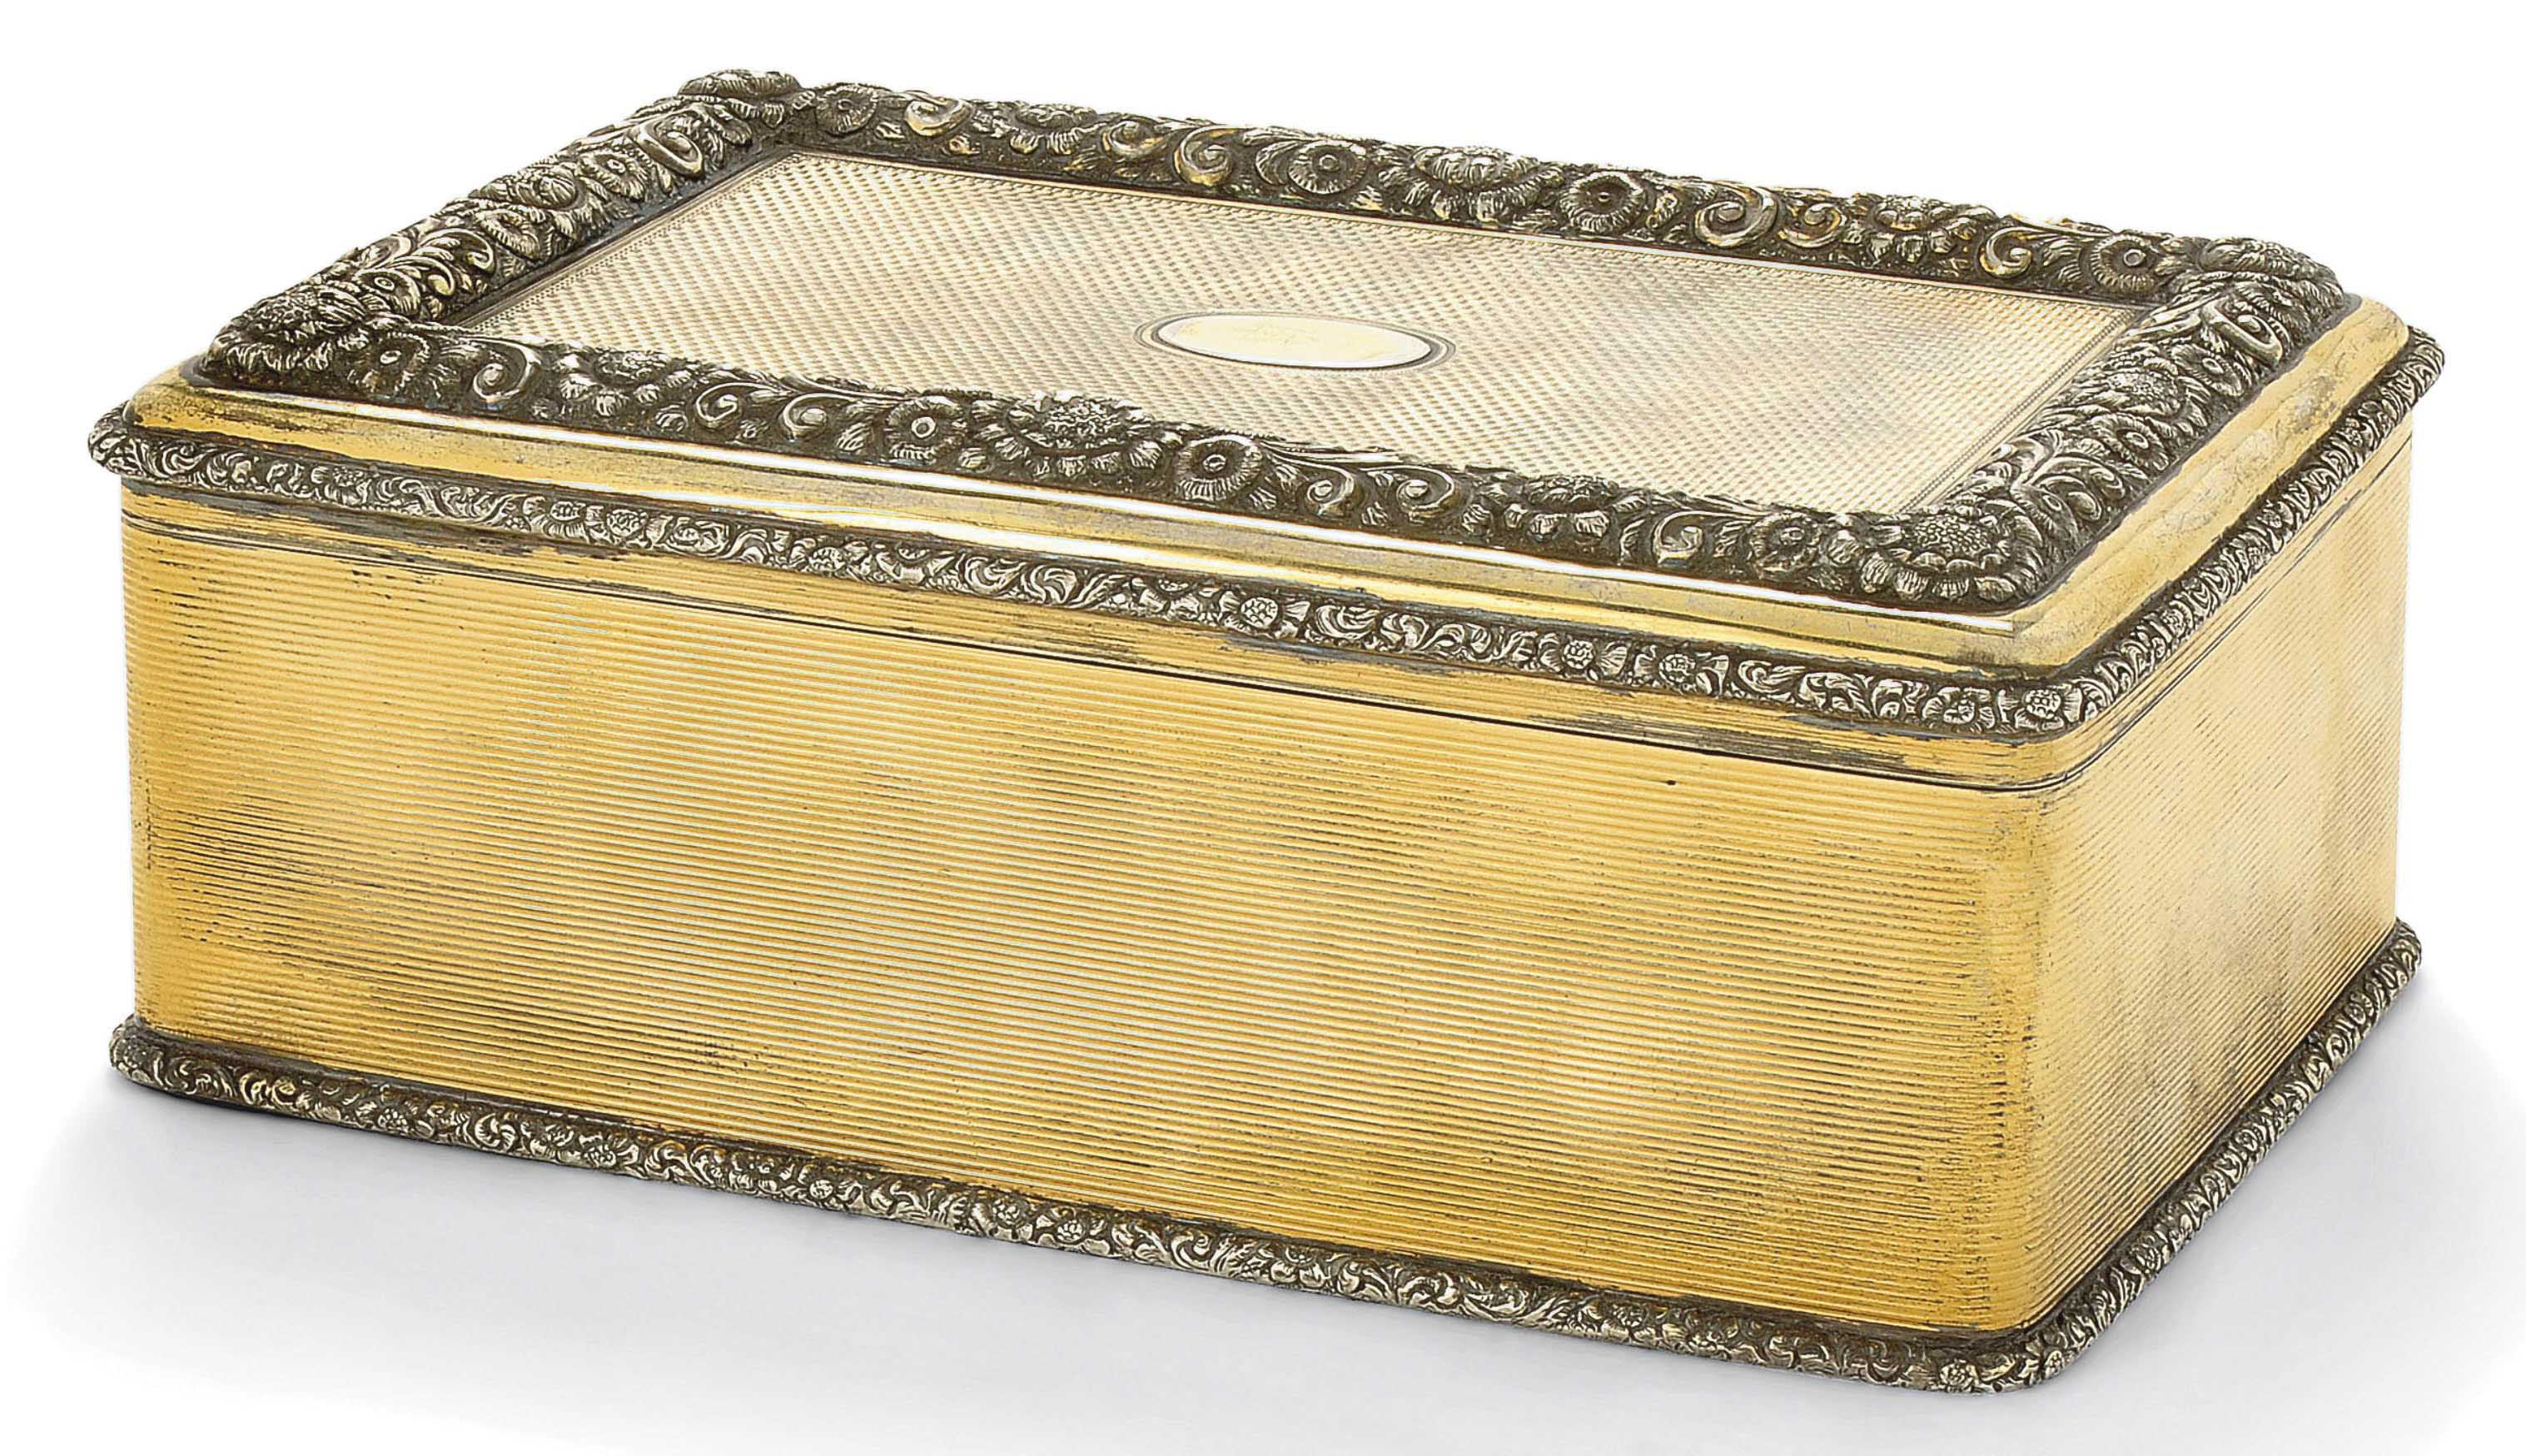 A PARCEL-GILT SILVER CIGAR BOX IN THE FORM OF A REGENCY SNUFF BOX